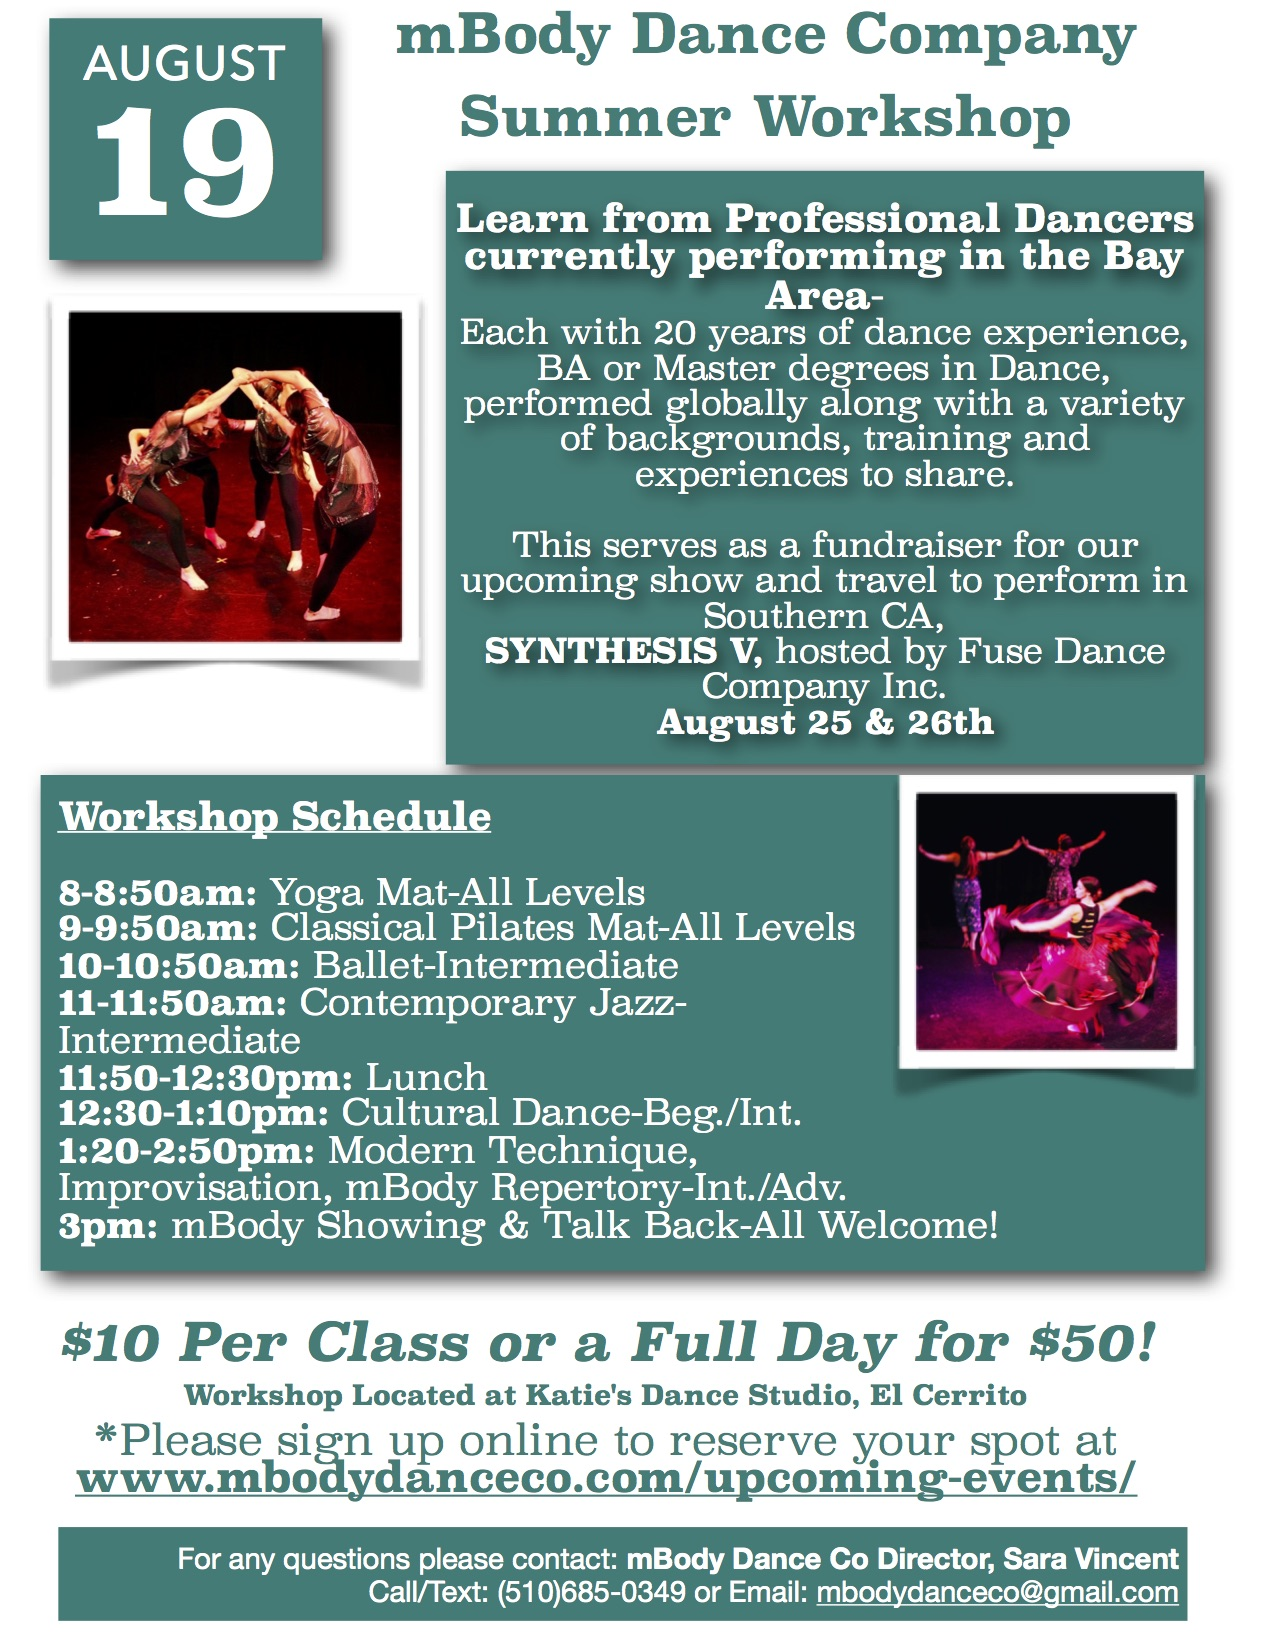 mBody Summer Workshop-Aug 19 (final)